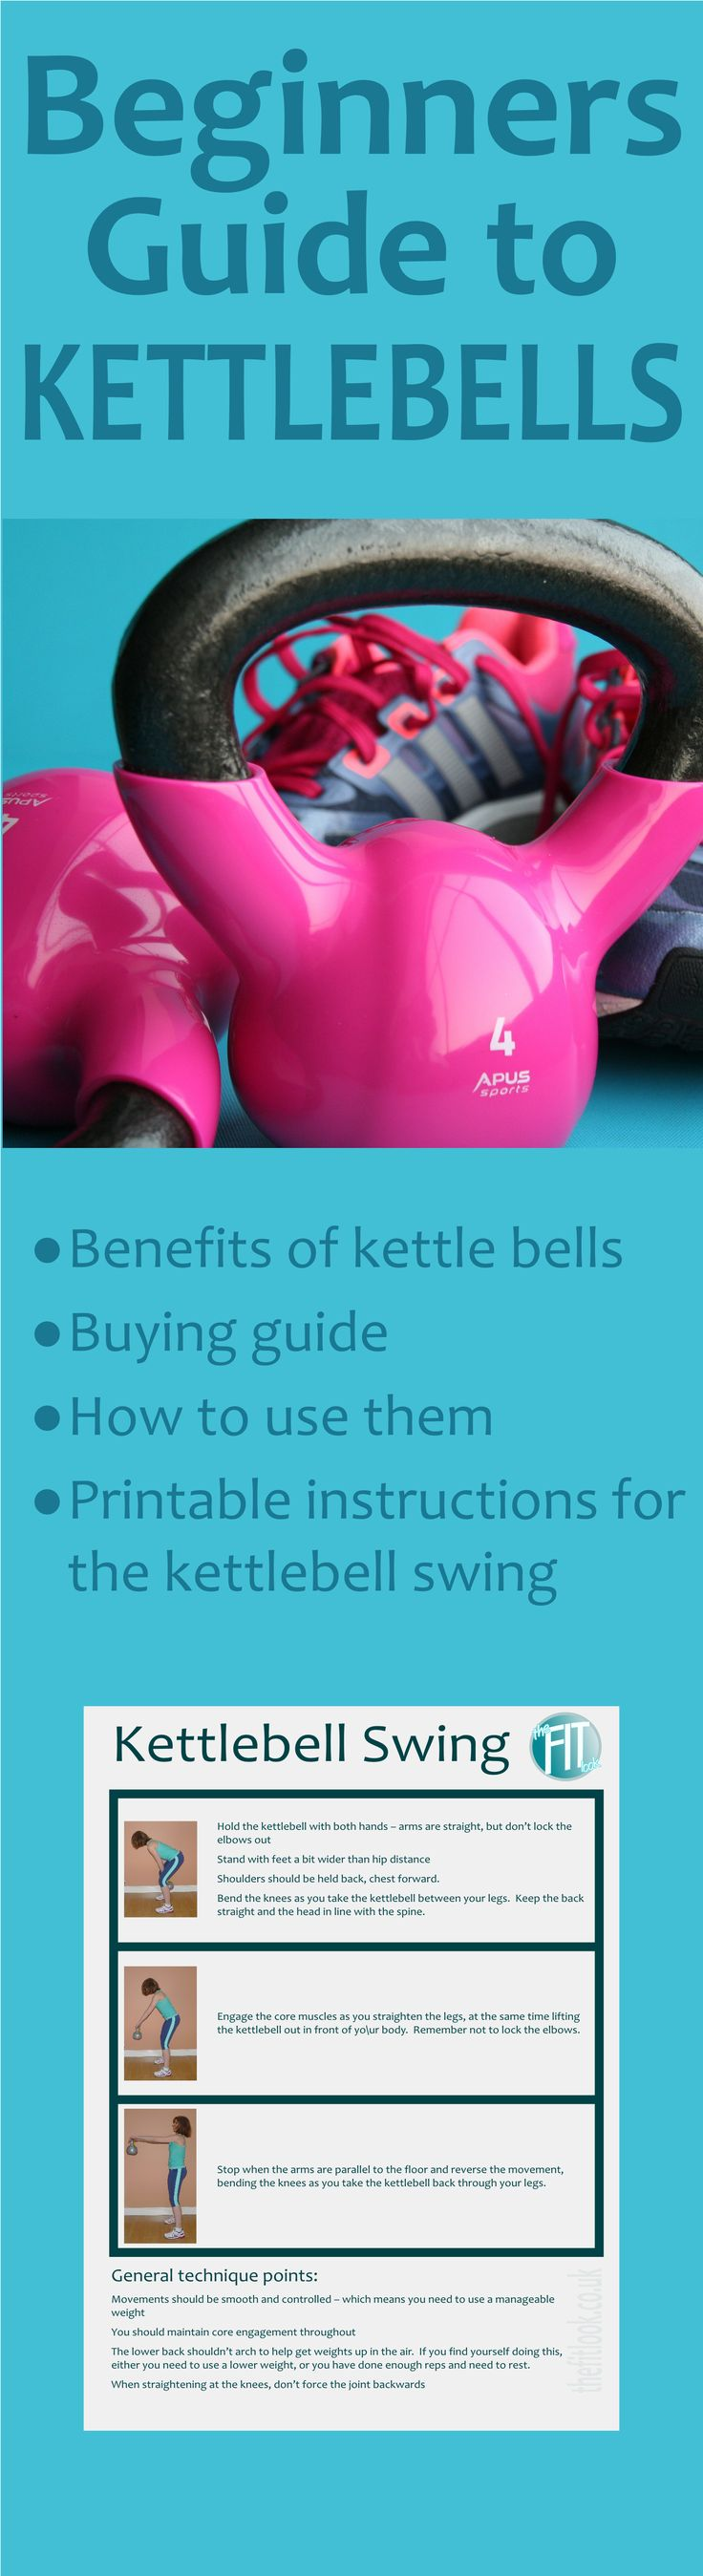 With kettlebells you can get a better all-over body workout than with other weights – top 5 kettlebell benefits plus beginners guide